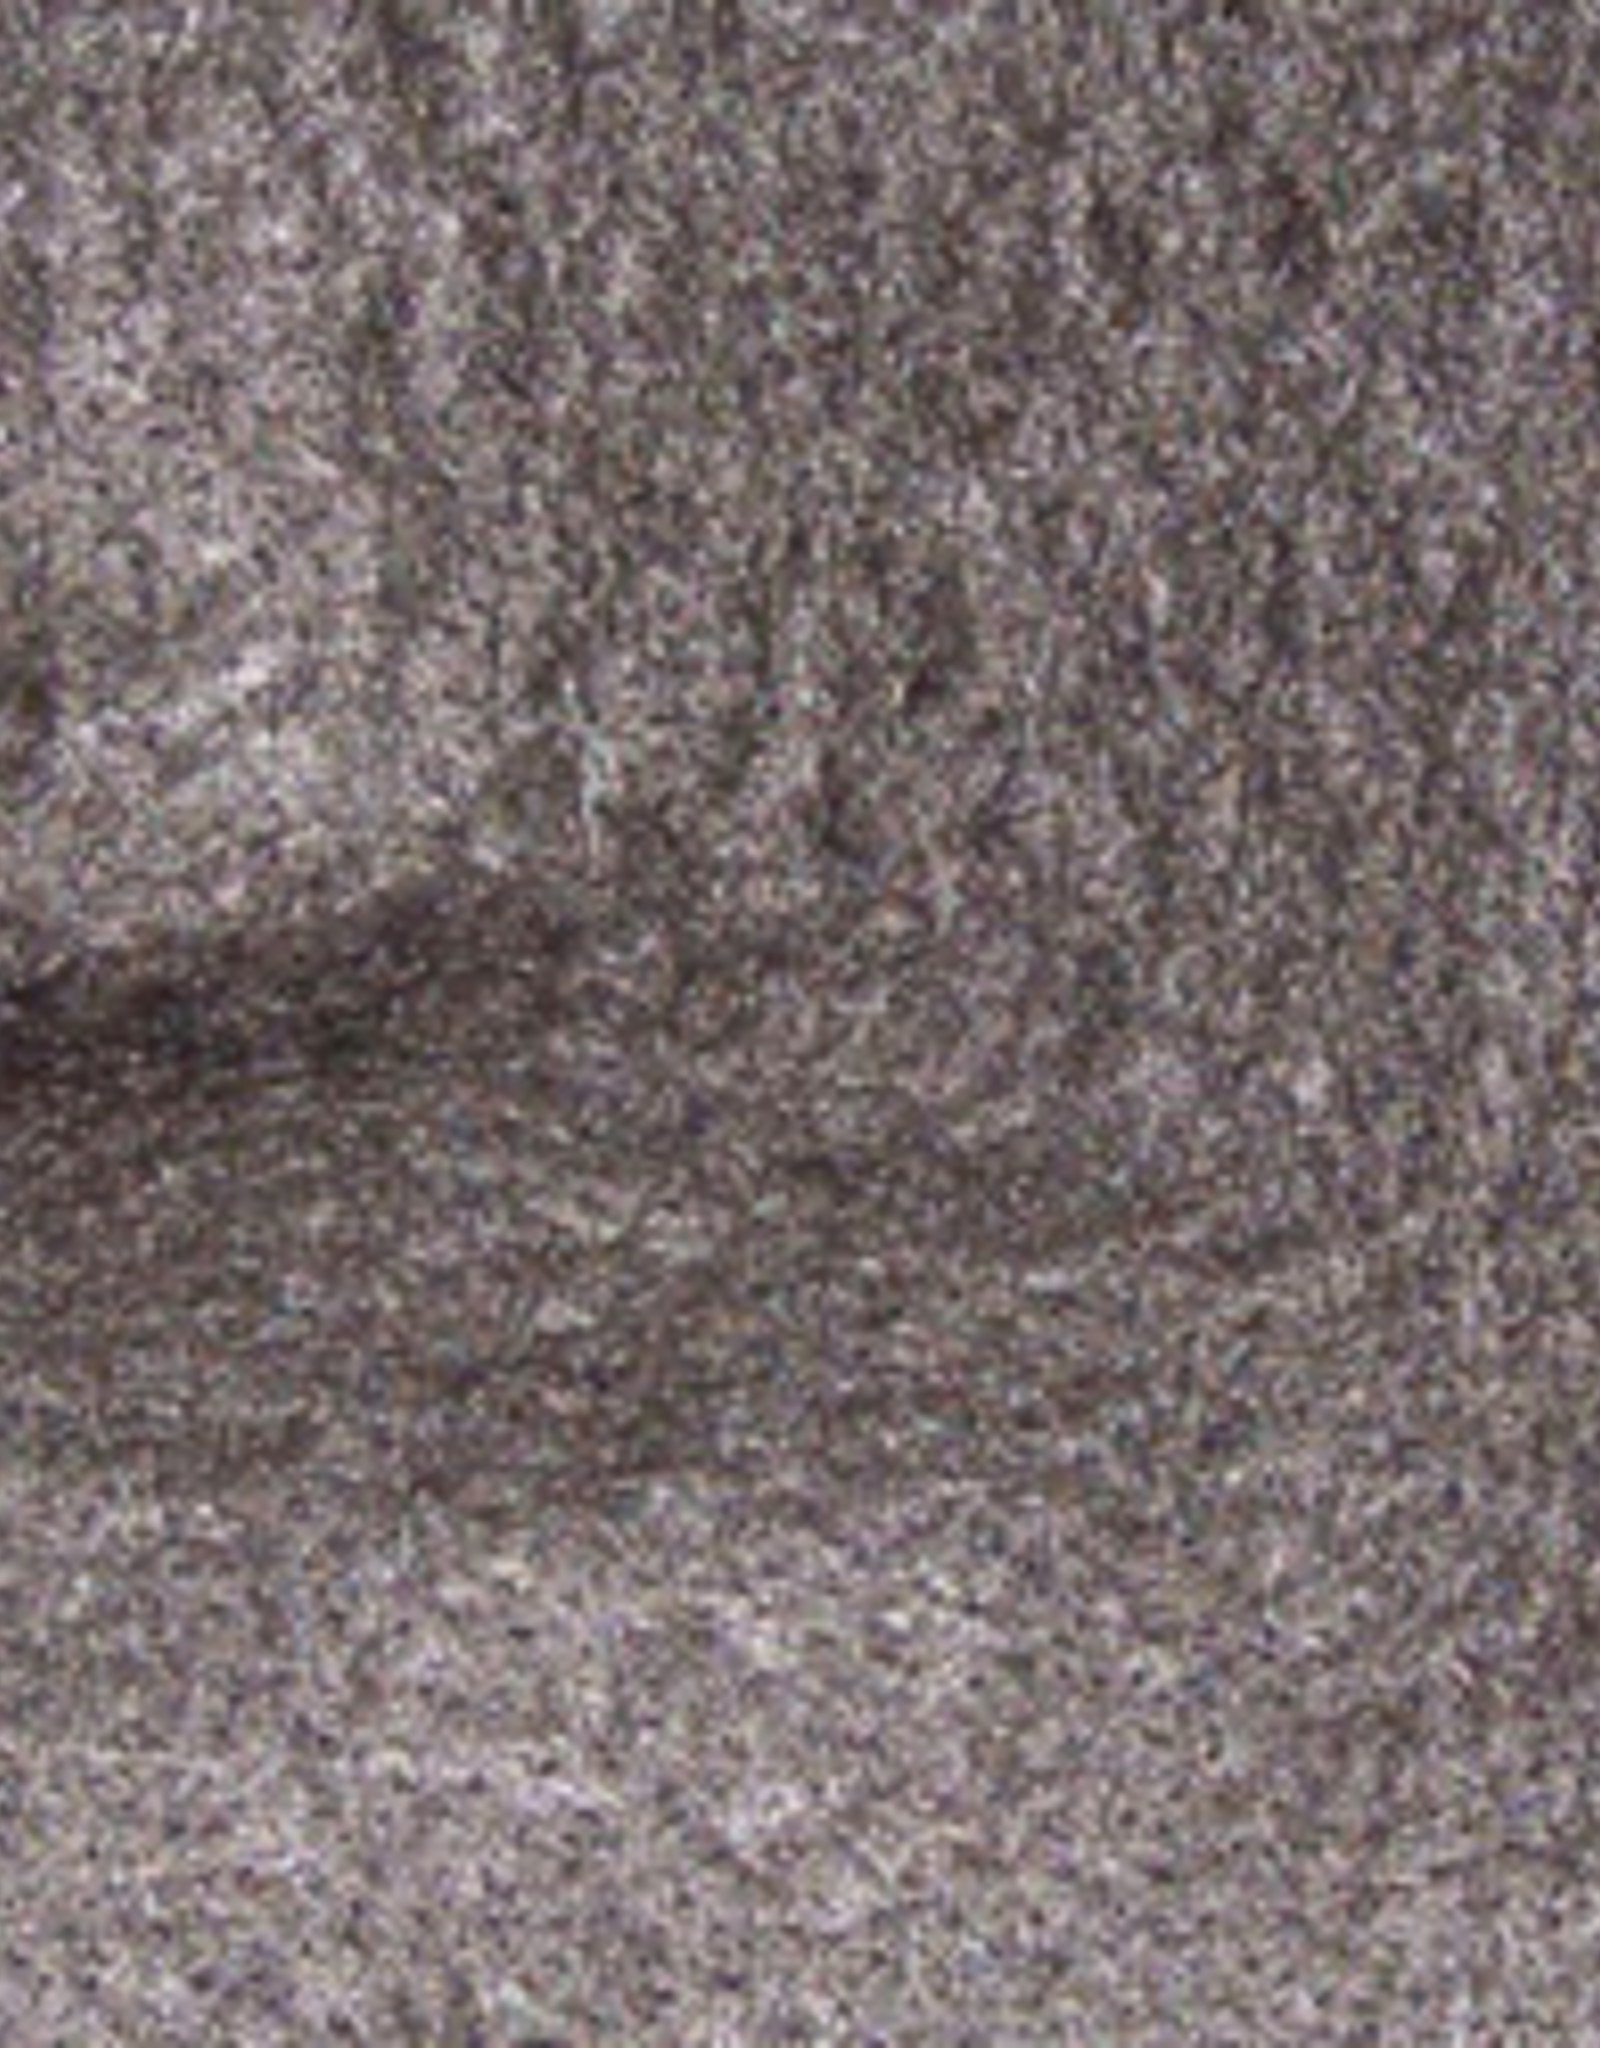 GT-140 Needle Punched, Non-Woven 4 oz. Geotextile Material, SZ. 15' x 360'